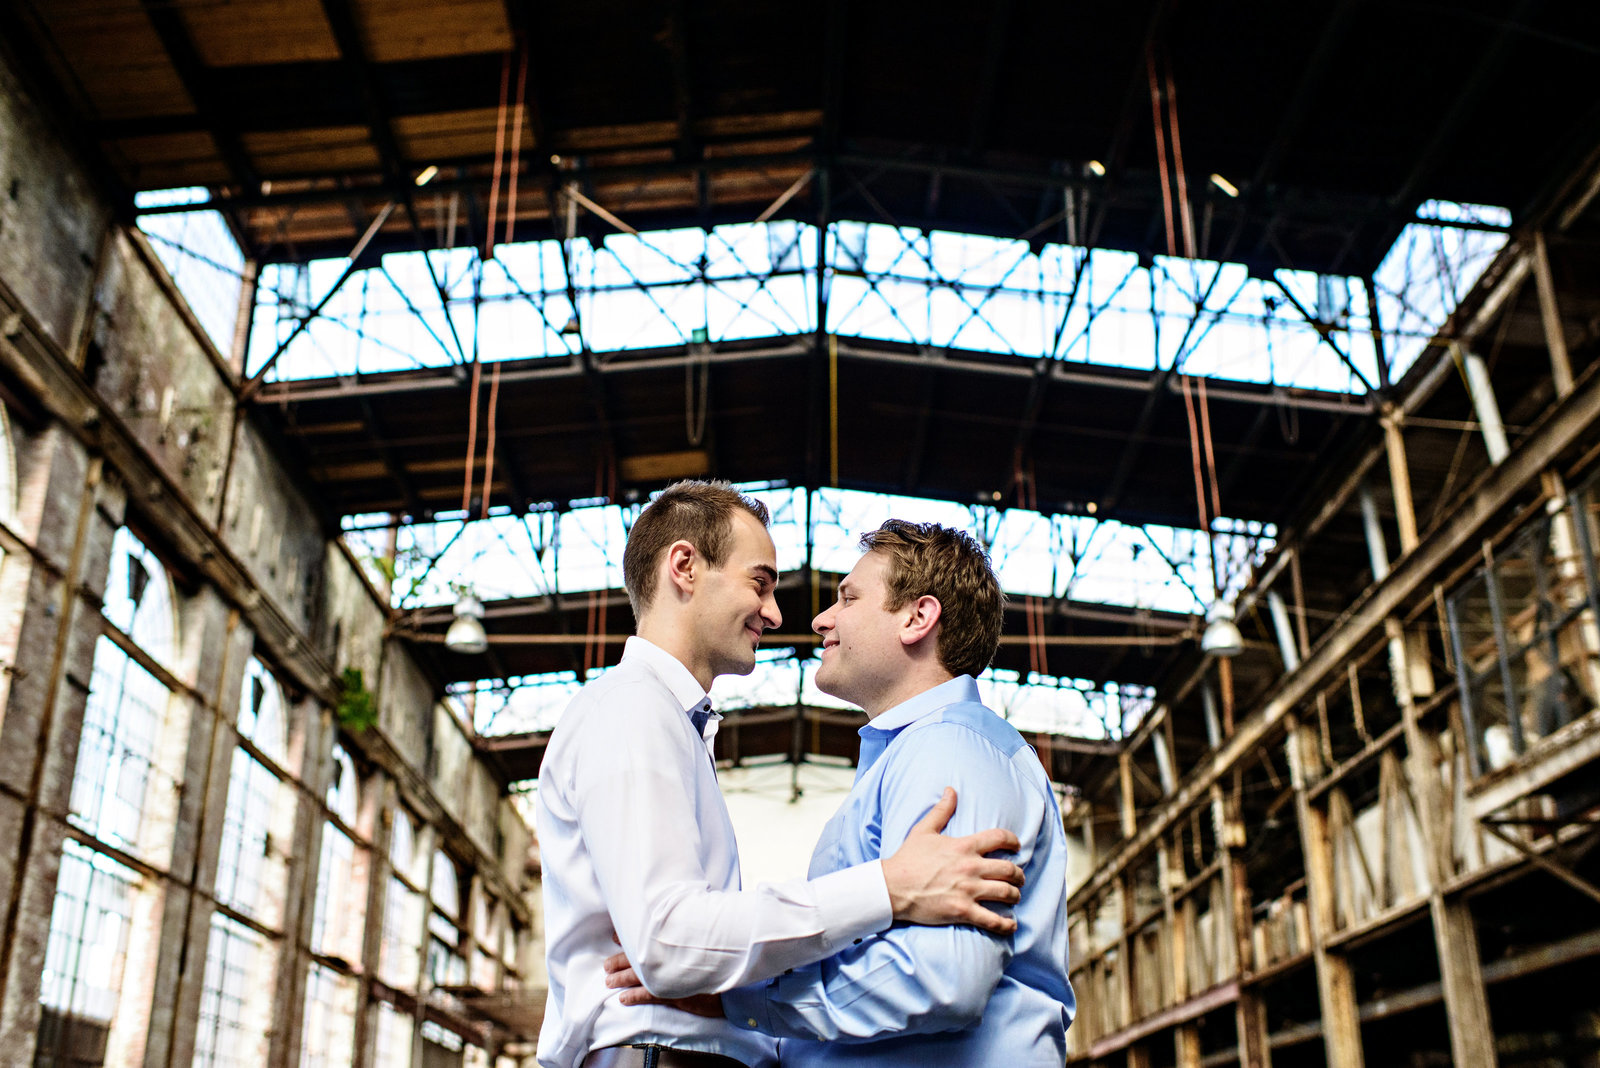 A same sex couple hug in an abandoned warehouse in baltimore, md.